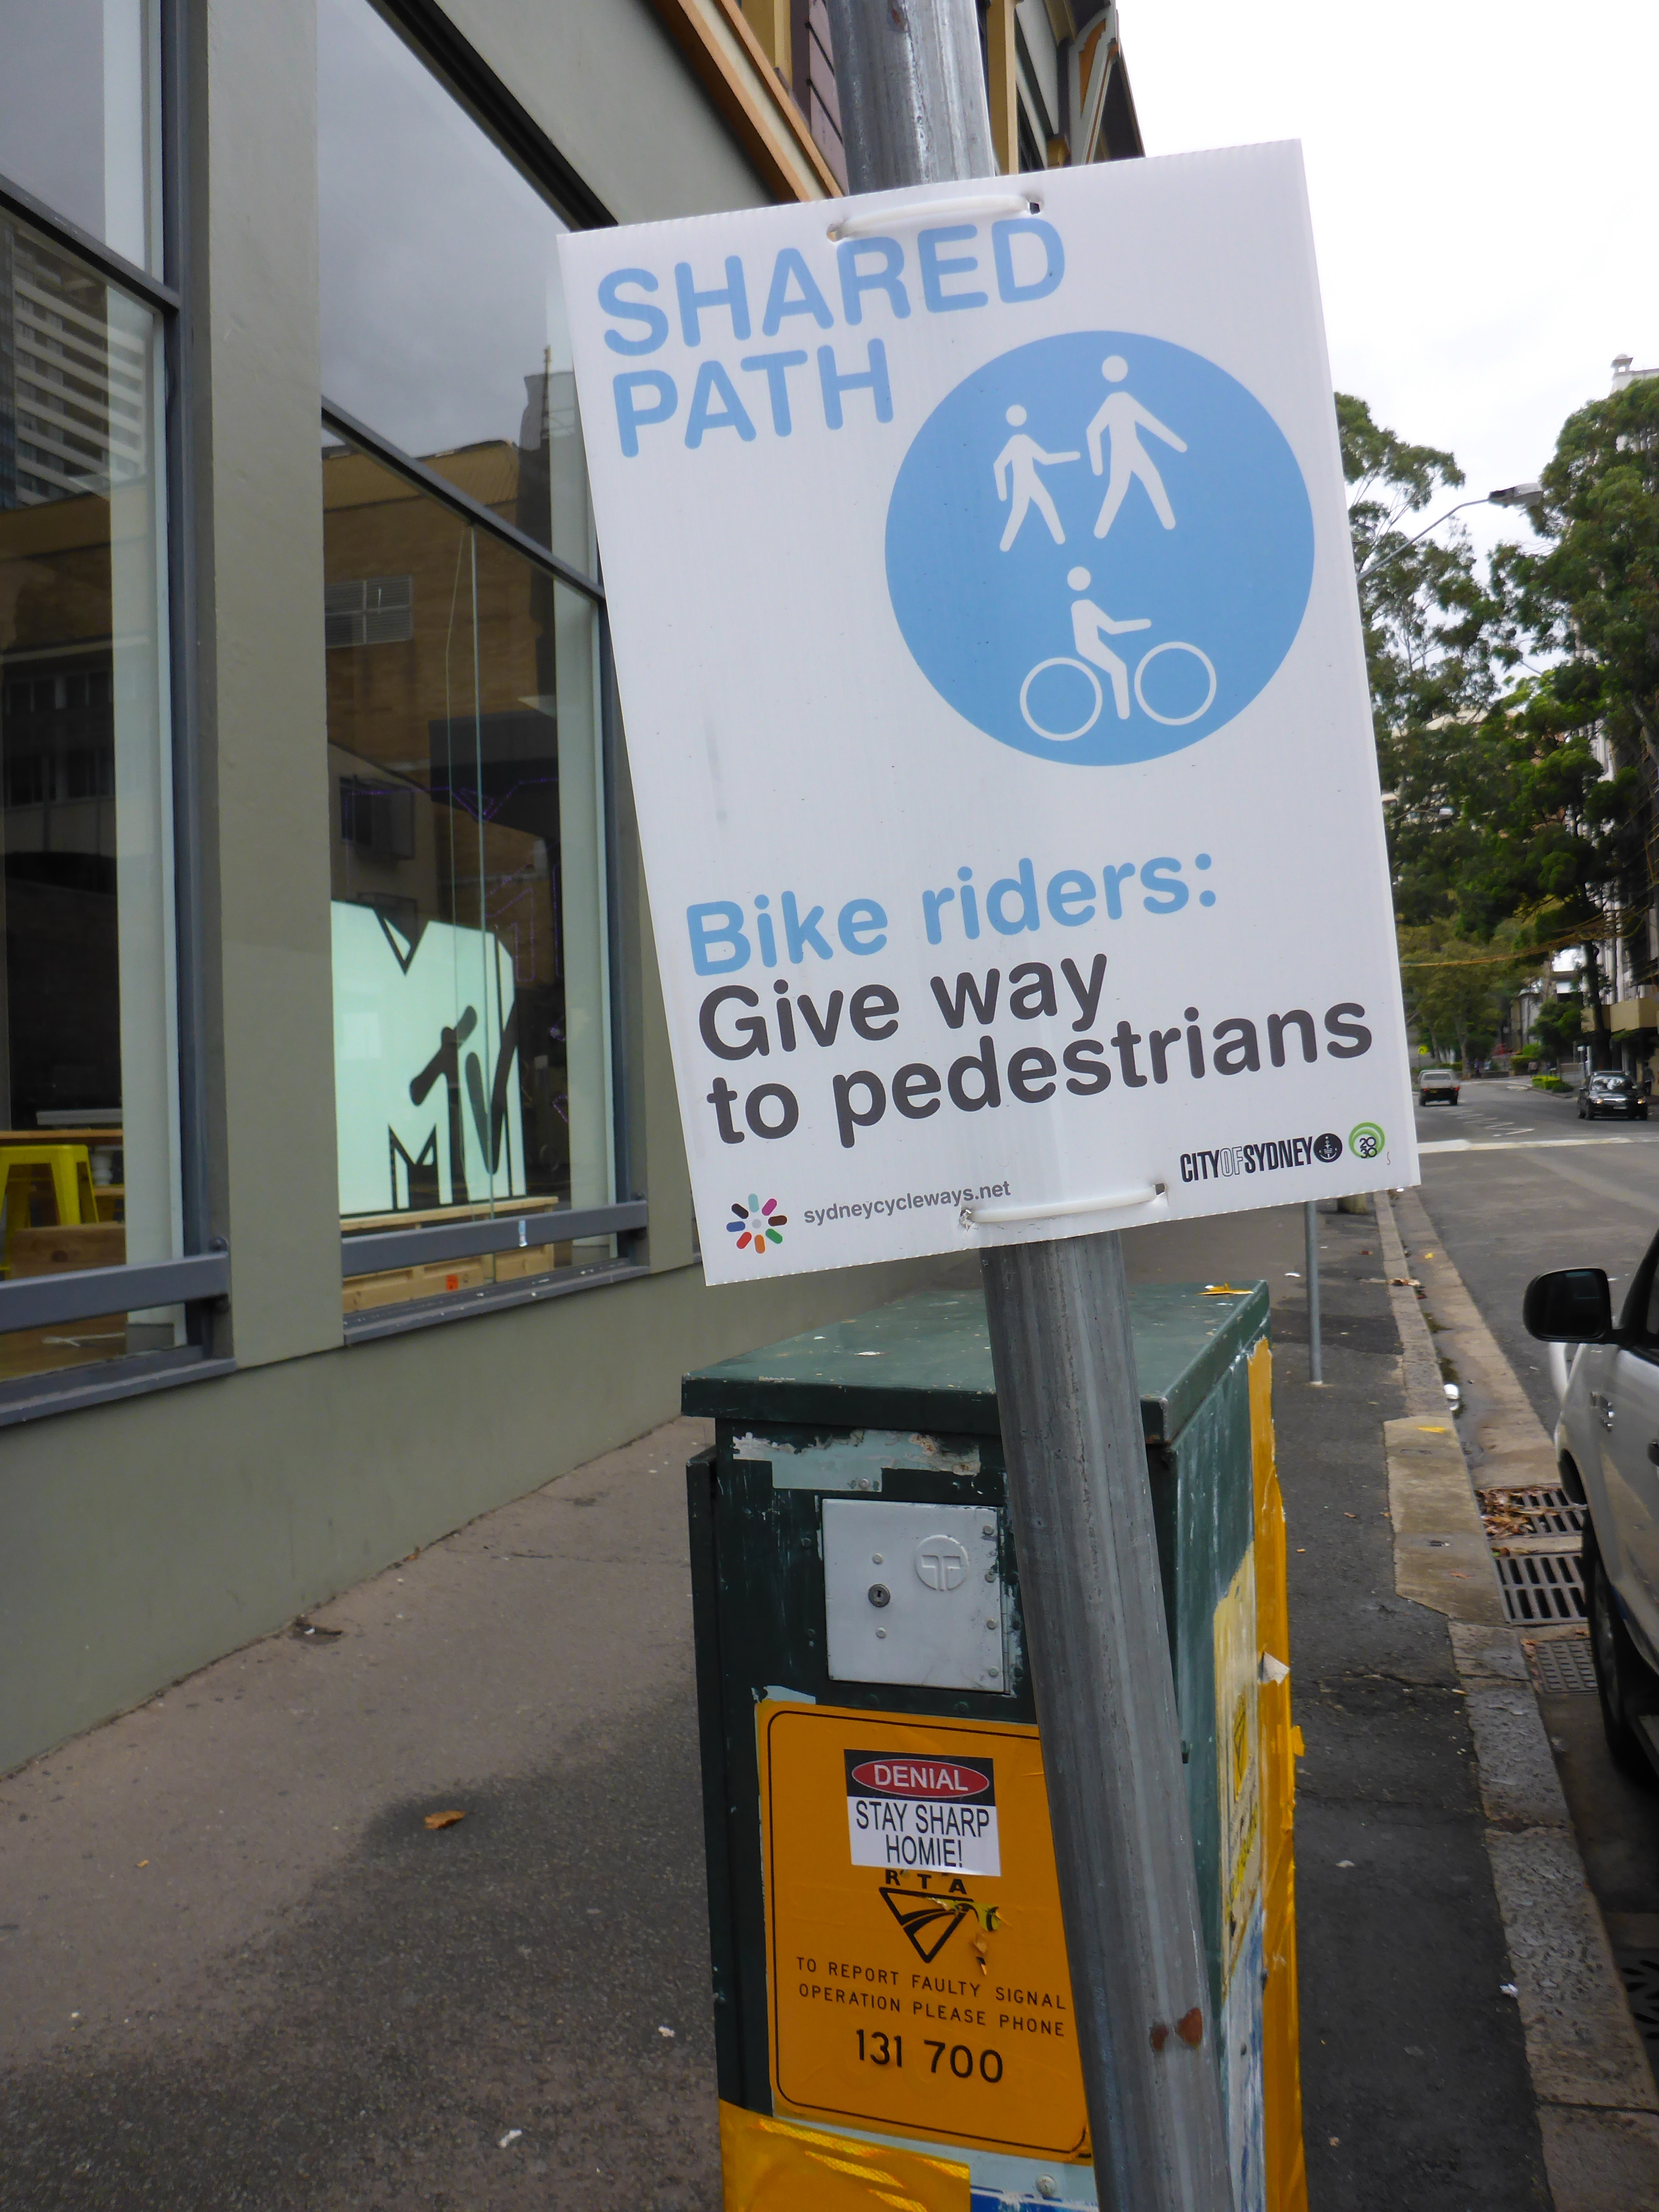 Shared space sign with pedestrian priority